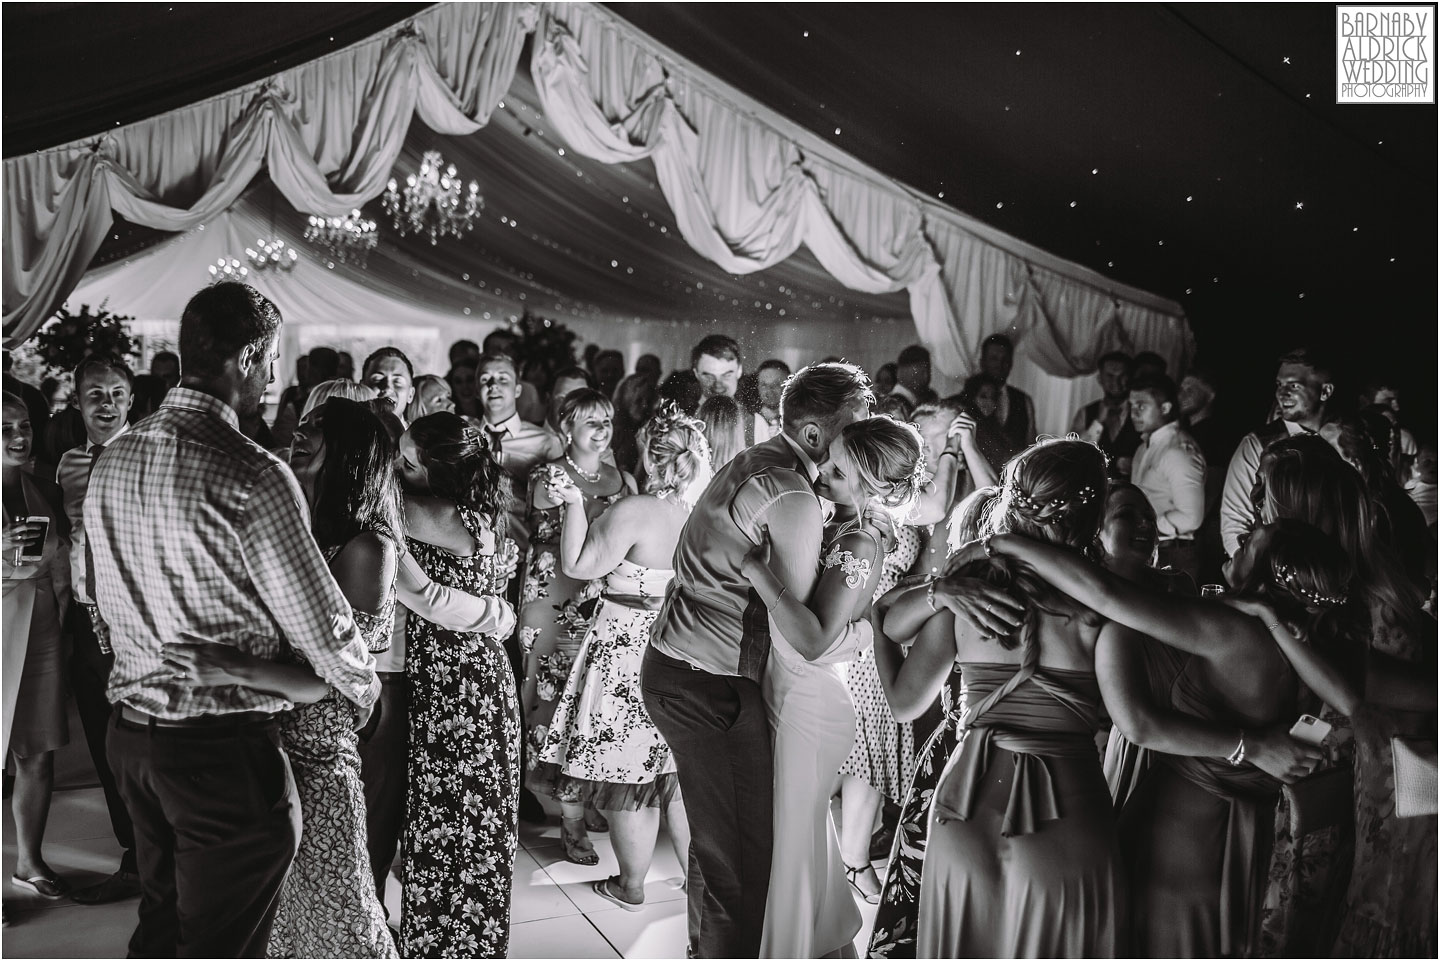 Wedding photography dancefloor at Priory Cottages near Wetherby in Yorkshire